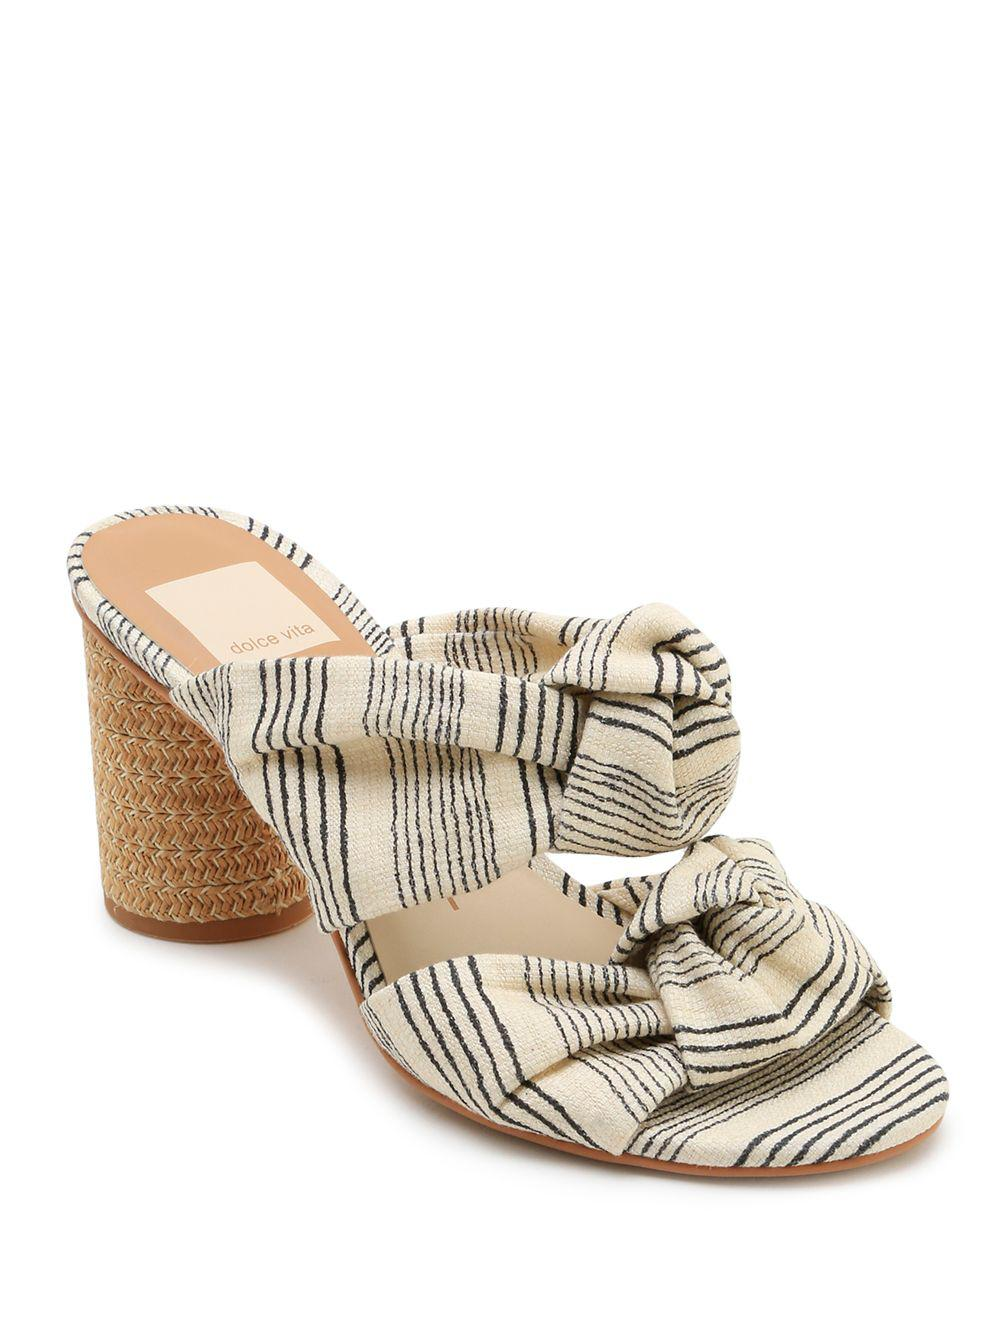 13e6c0f269f Dolce Vita - Natural Jene Striped Sandals - Lyst